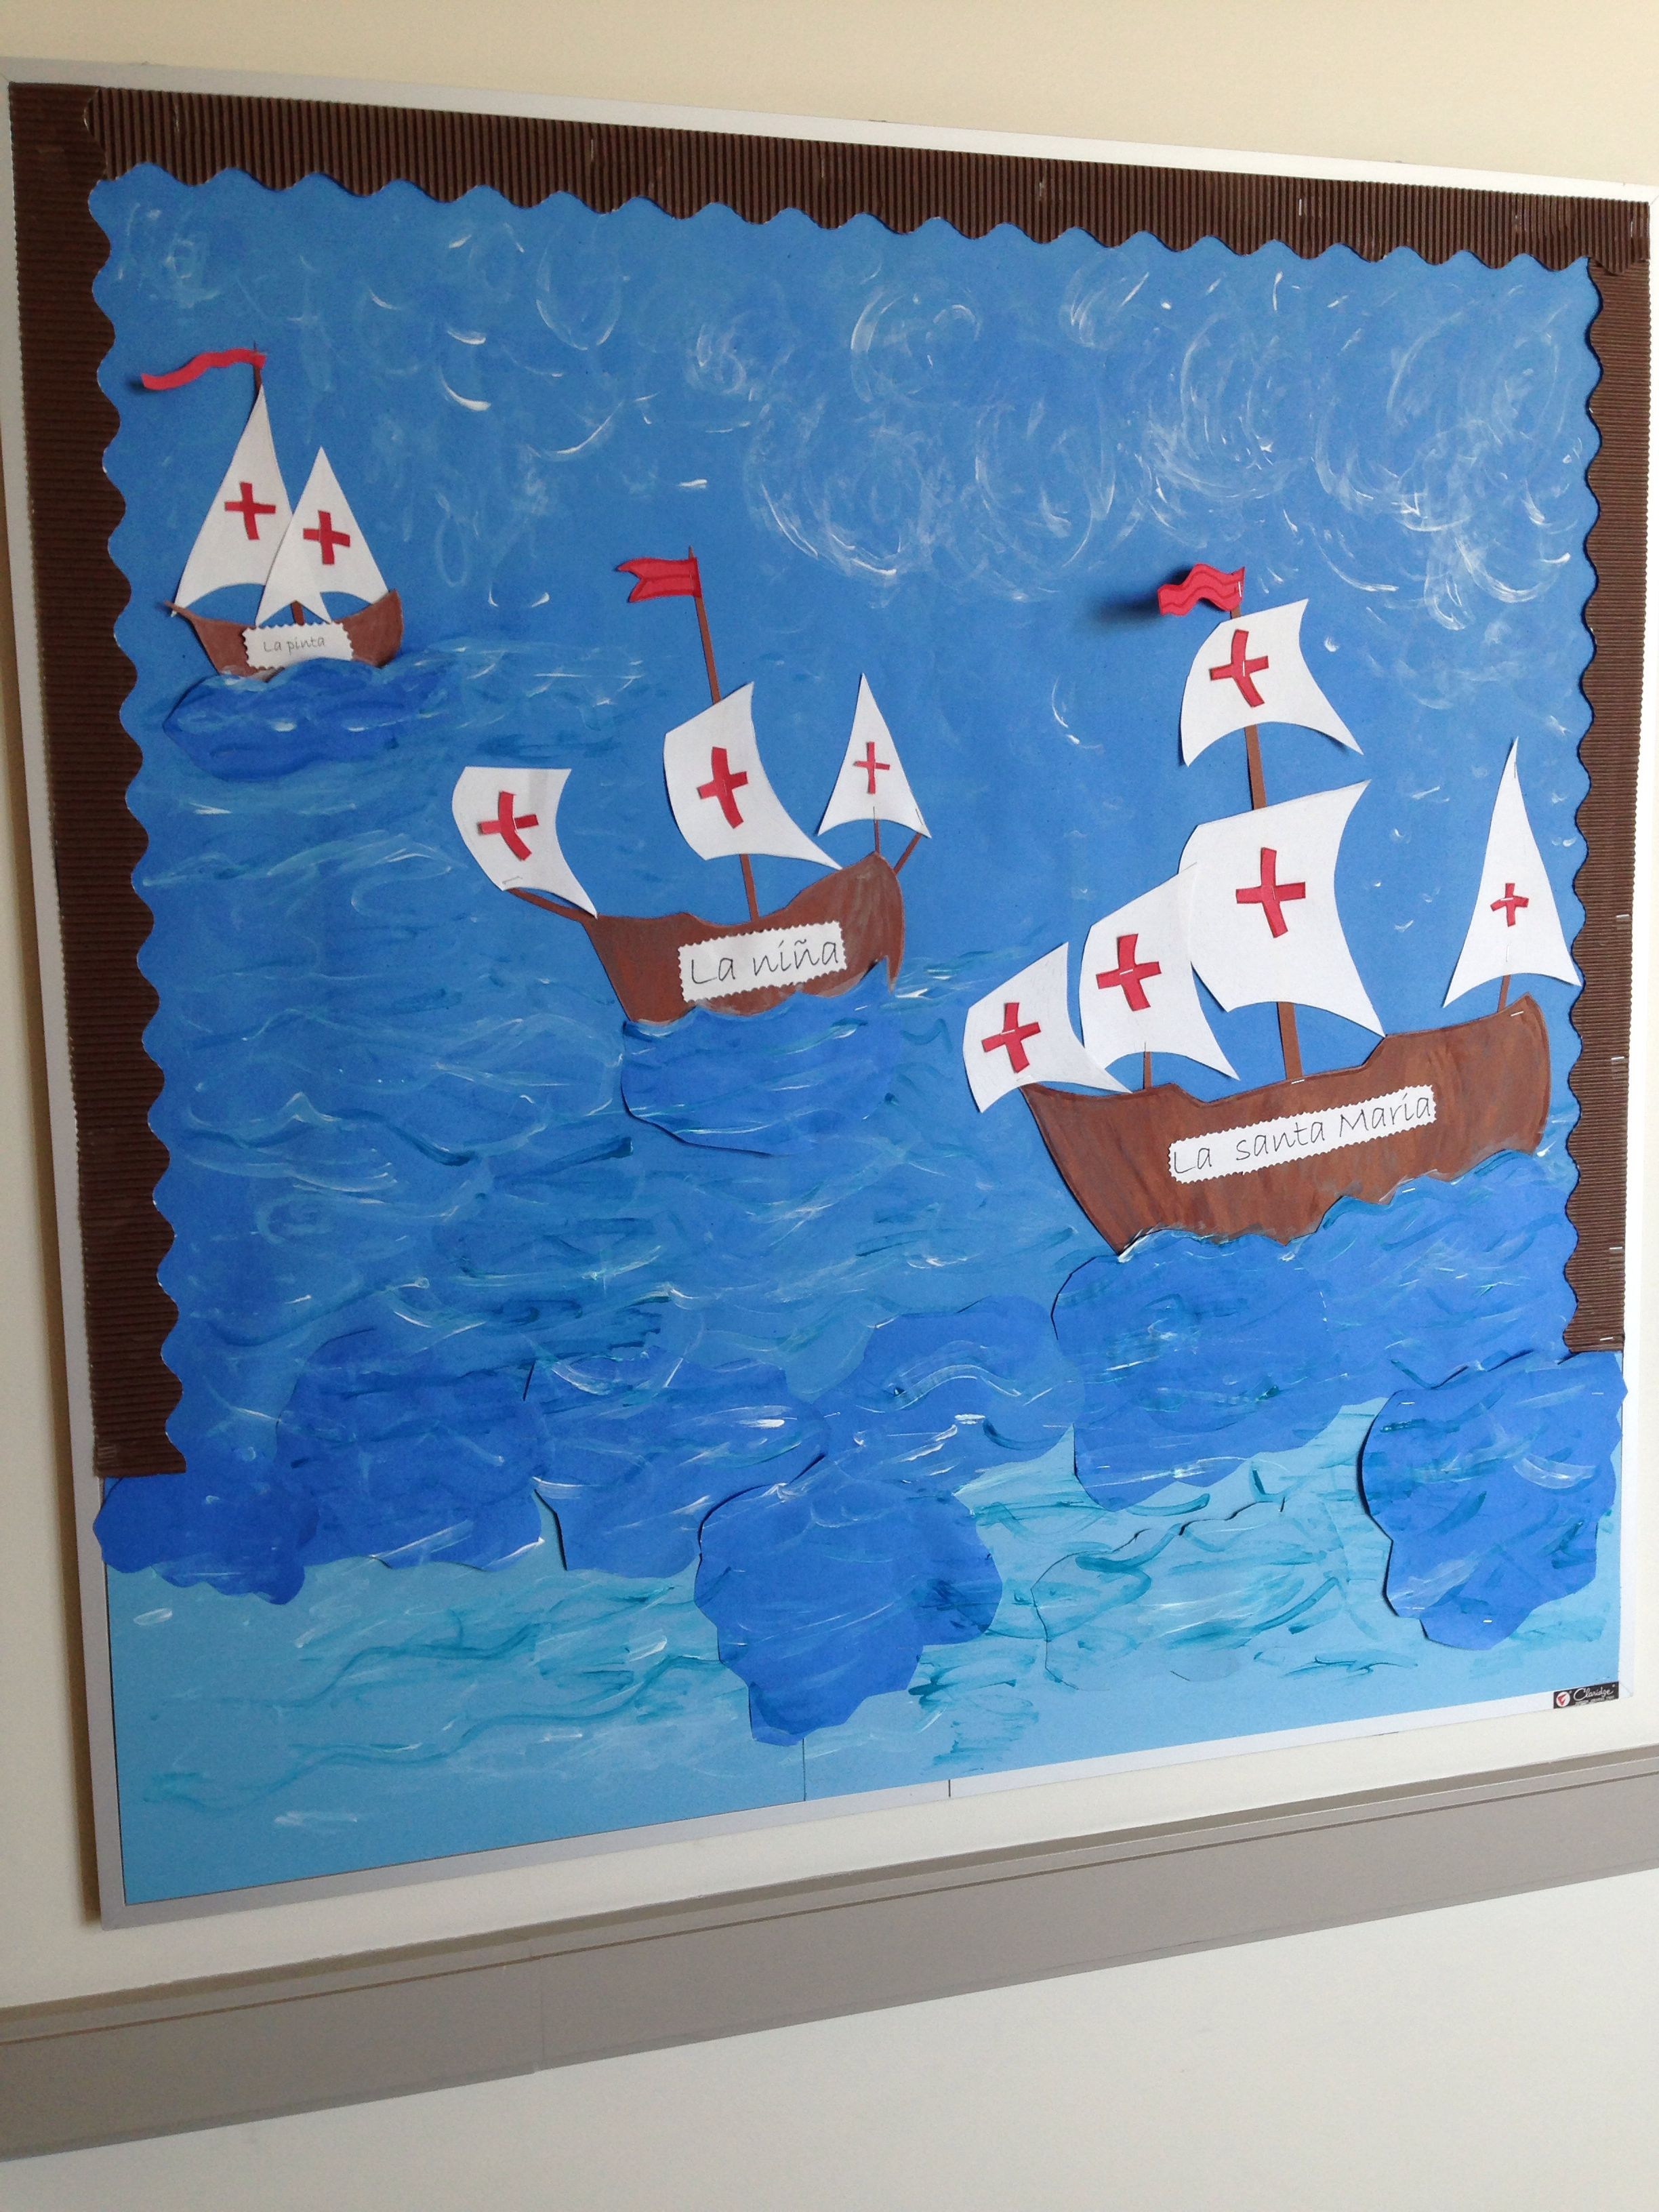 Columbus Day Bulletin Board The Students Will Write One Sentence On The Sails To Show What They Lear Classroom Decorations Christopher Columbus Columbus Day